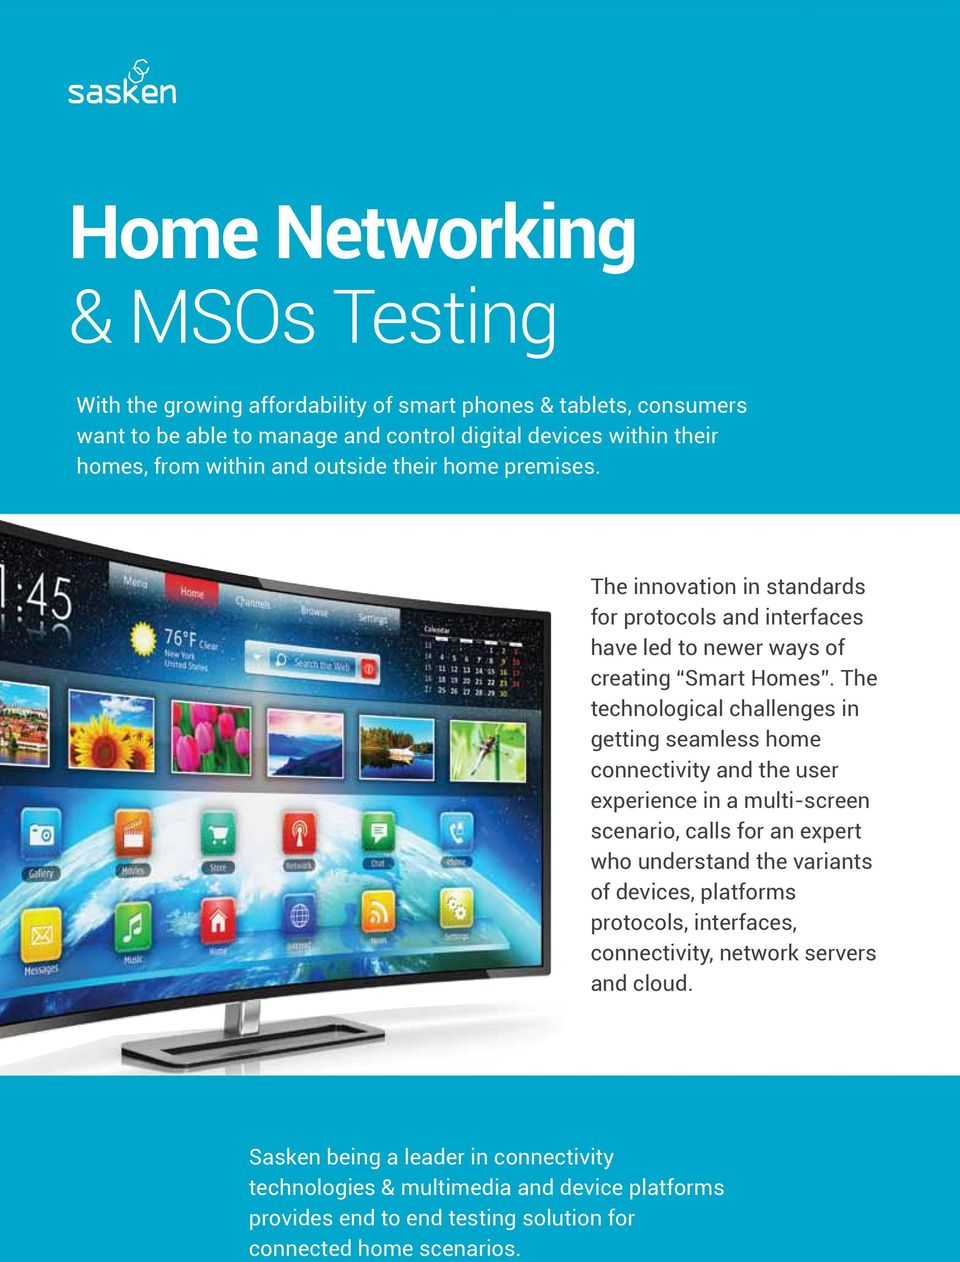 The technological challenges in getting seamless home connectivity and the user experience in a multi-screen scenario, calls for an expert who understand the variants of devices,